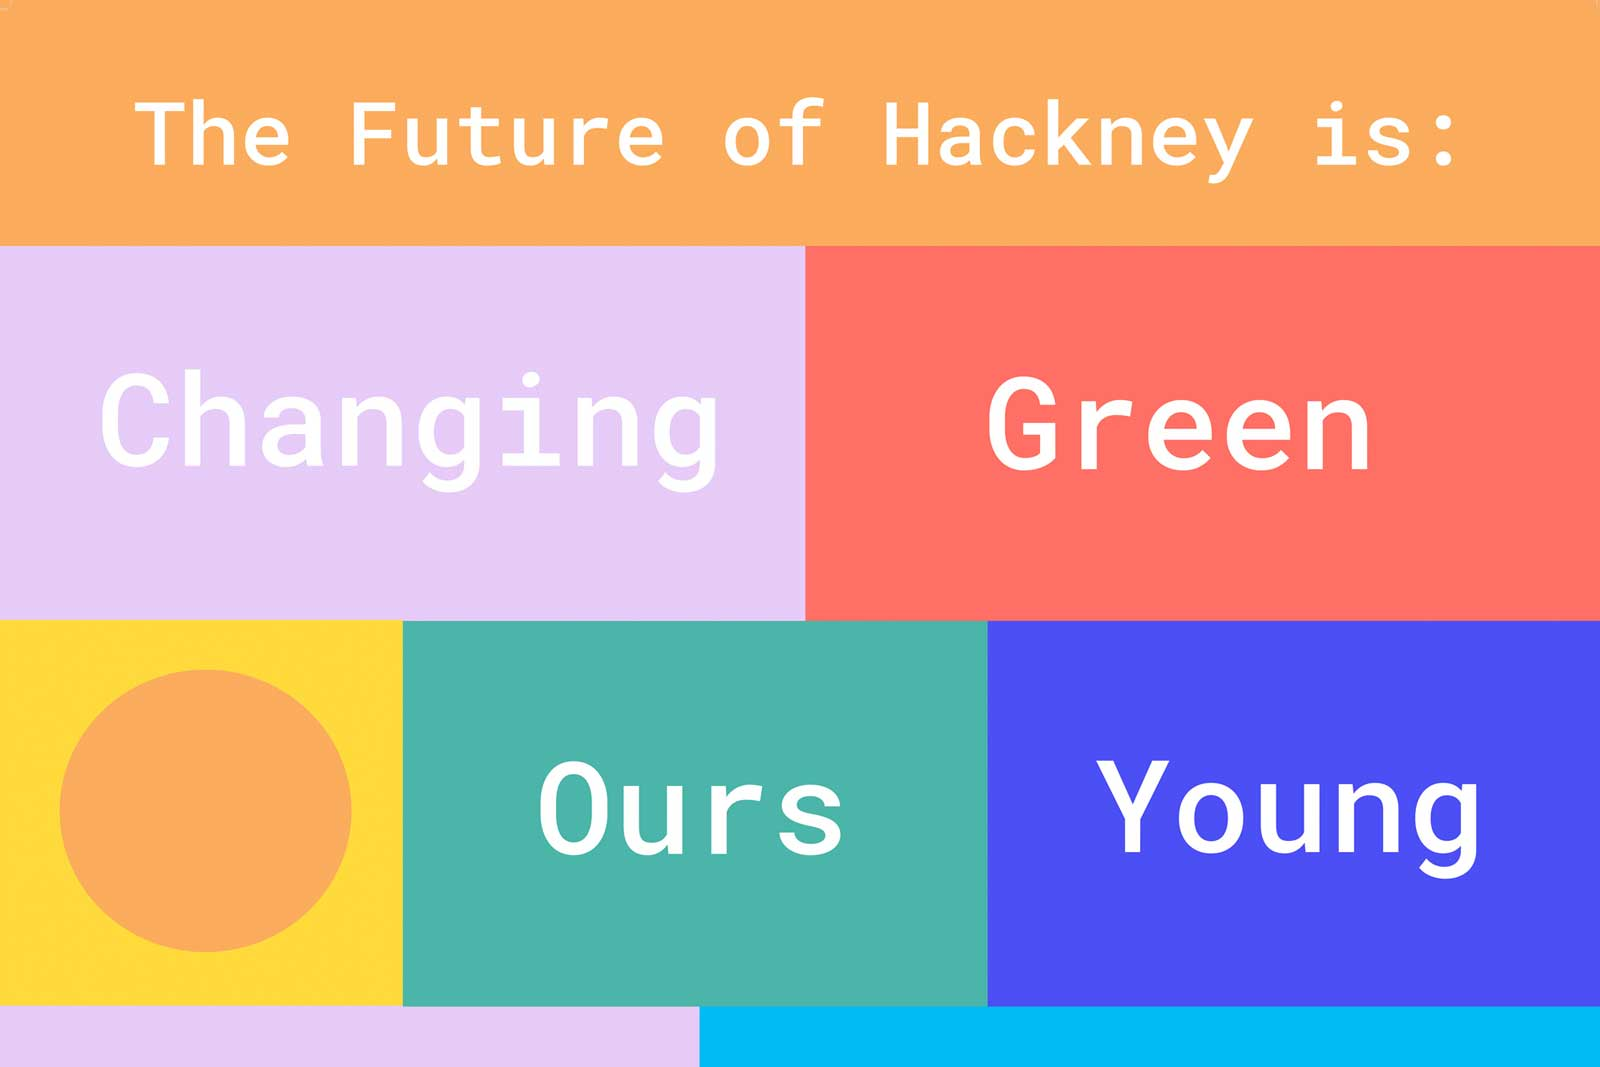 Your Future Worlds: Syrup Magazine and Eastside document the Hoxton community's hopes for Hackney's future